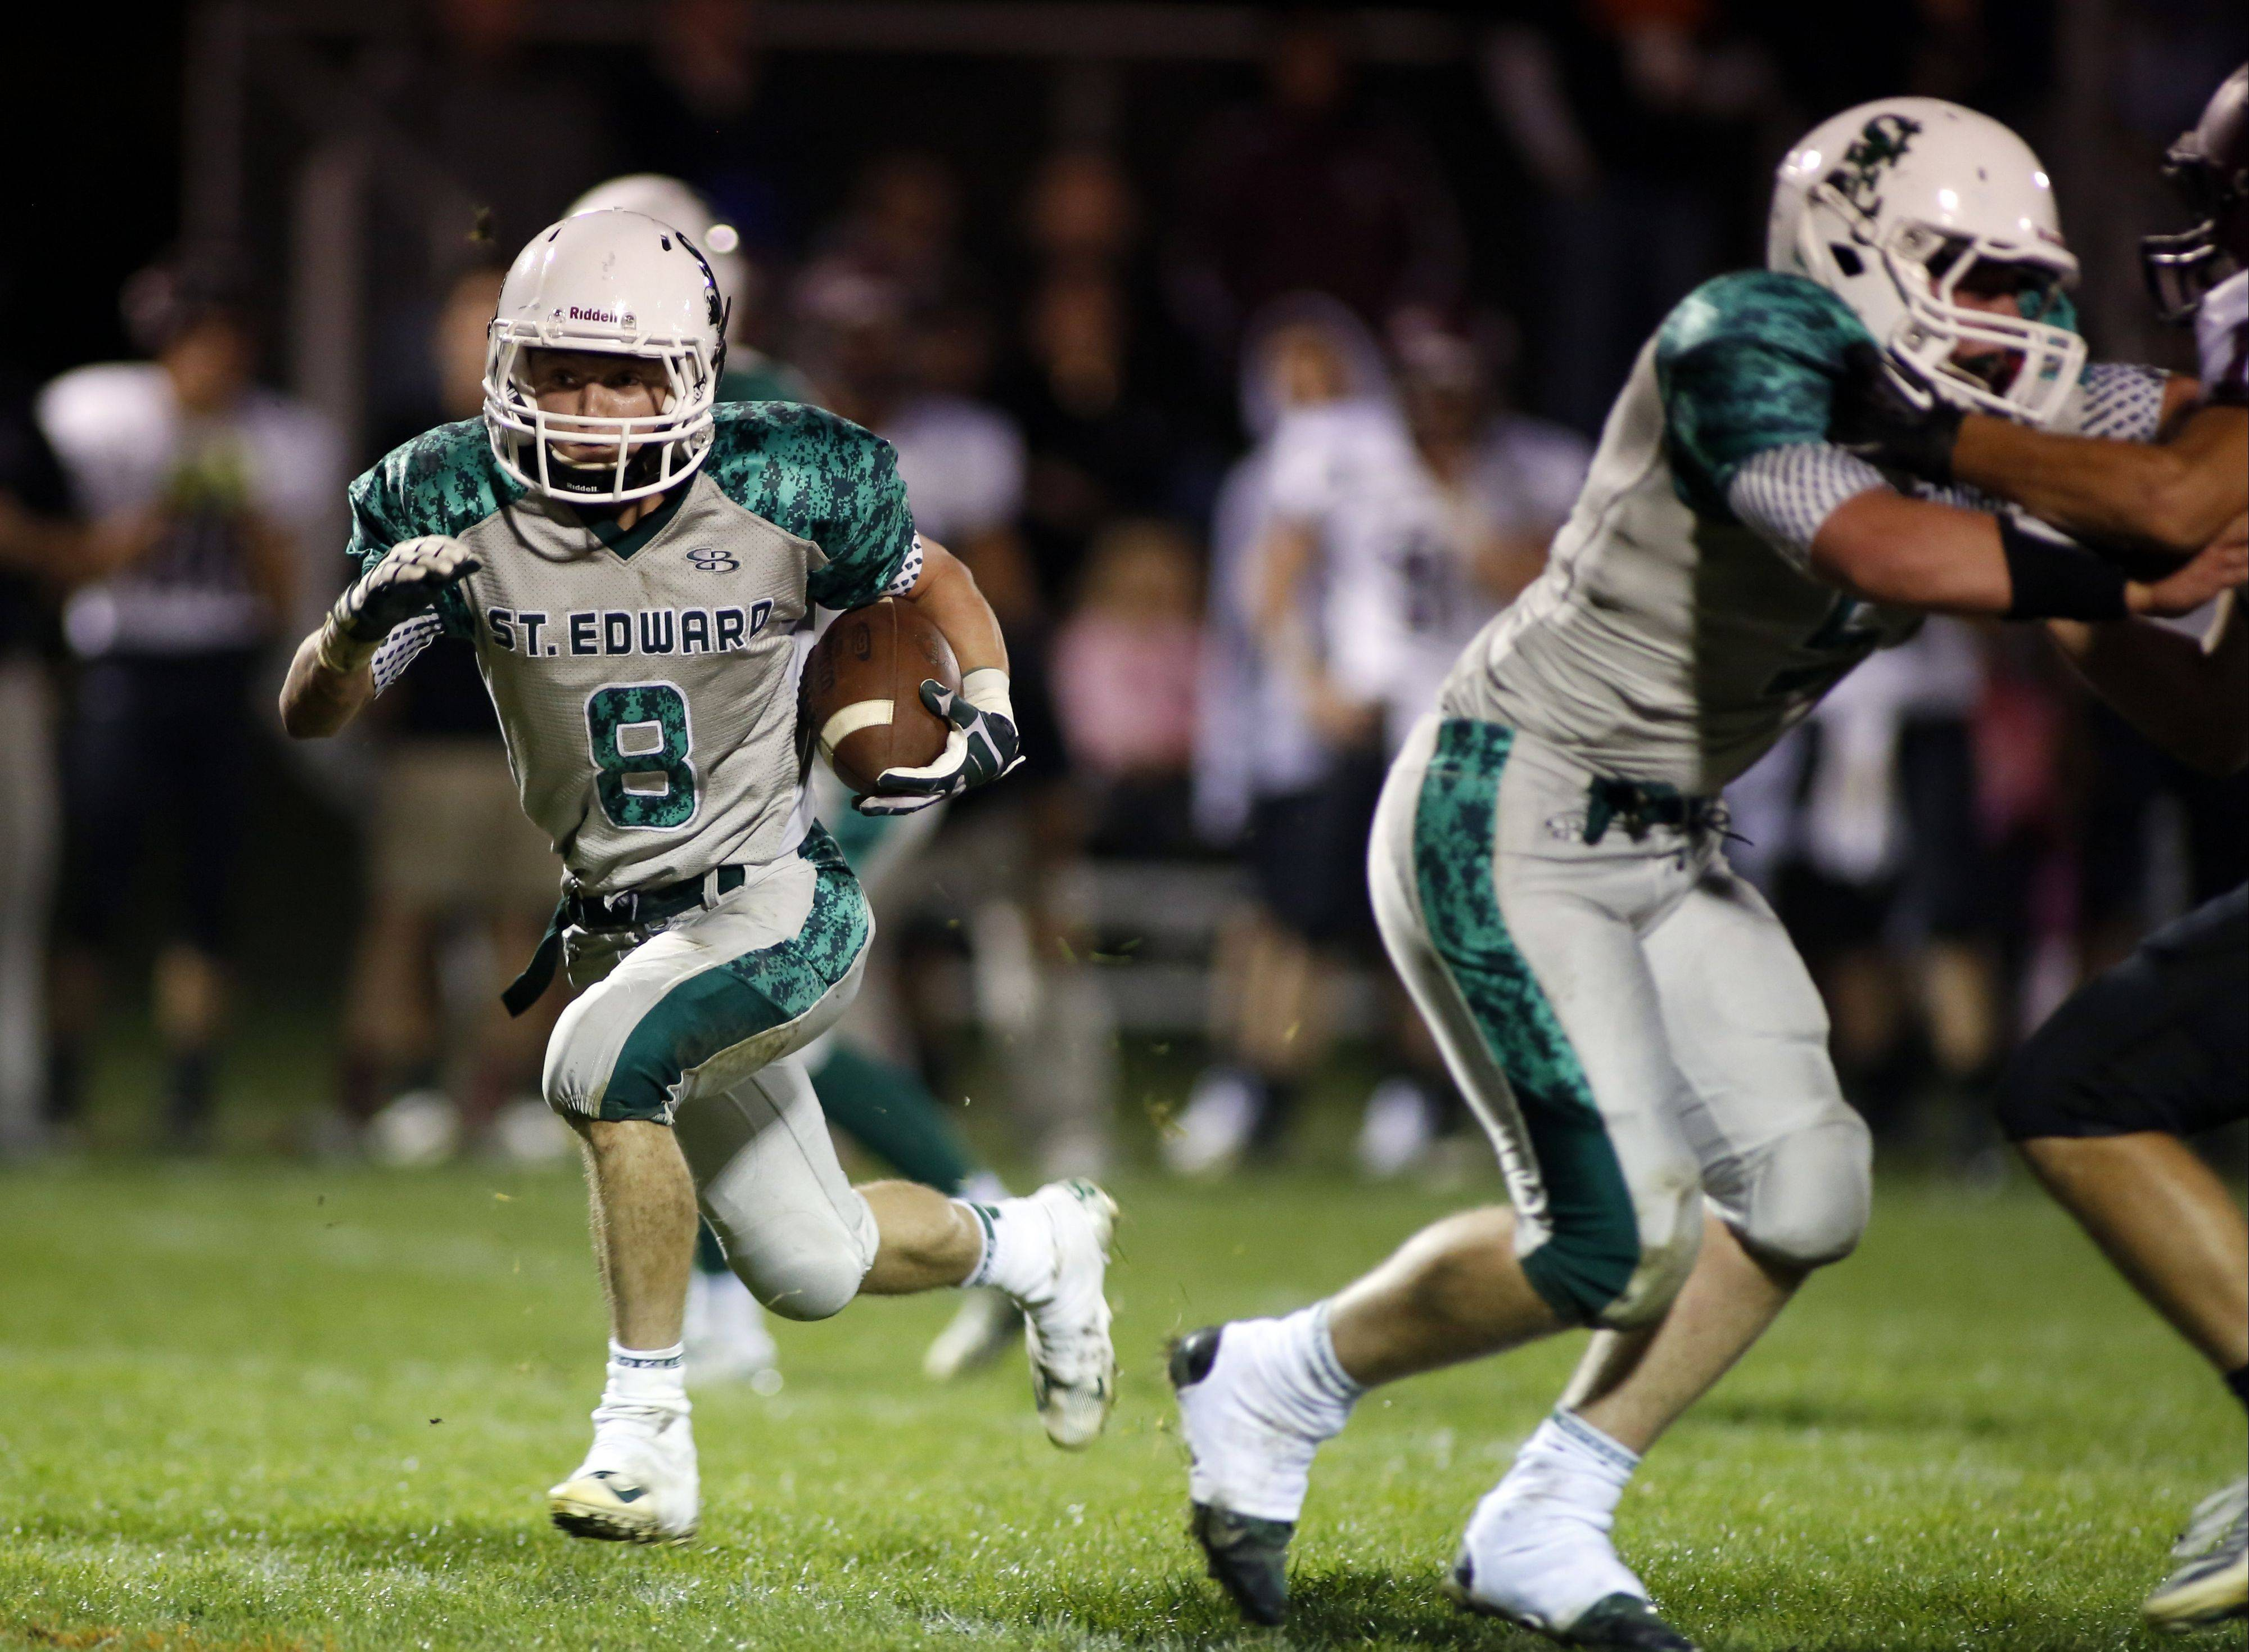 St. Edward rout leaves little doubt